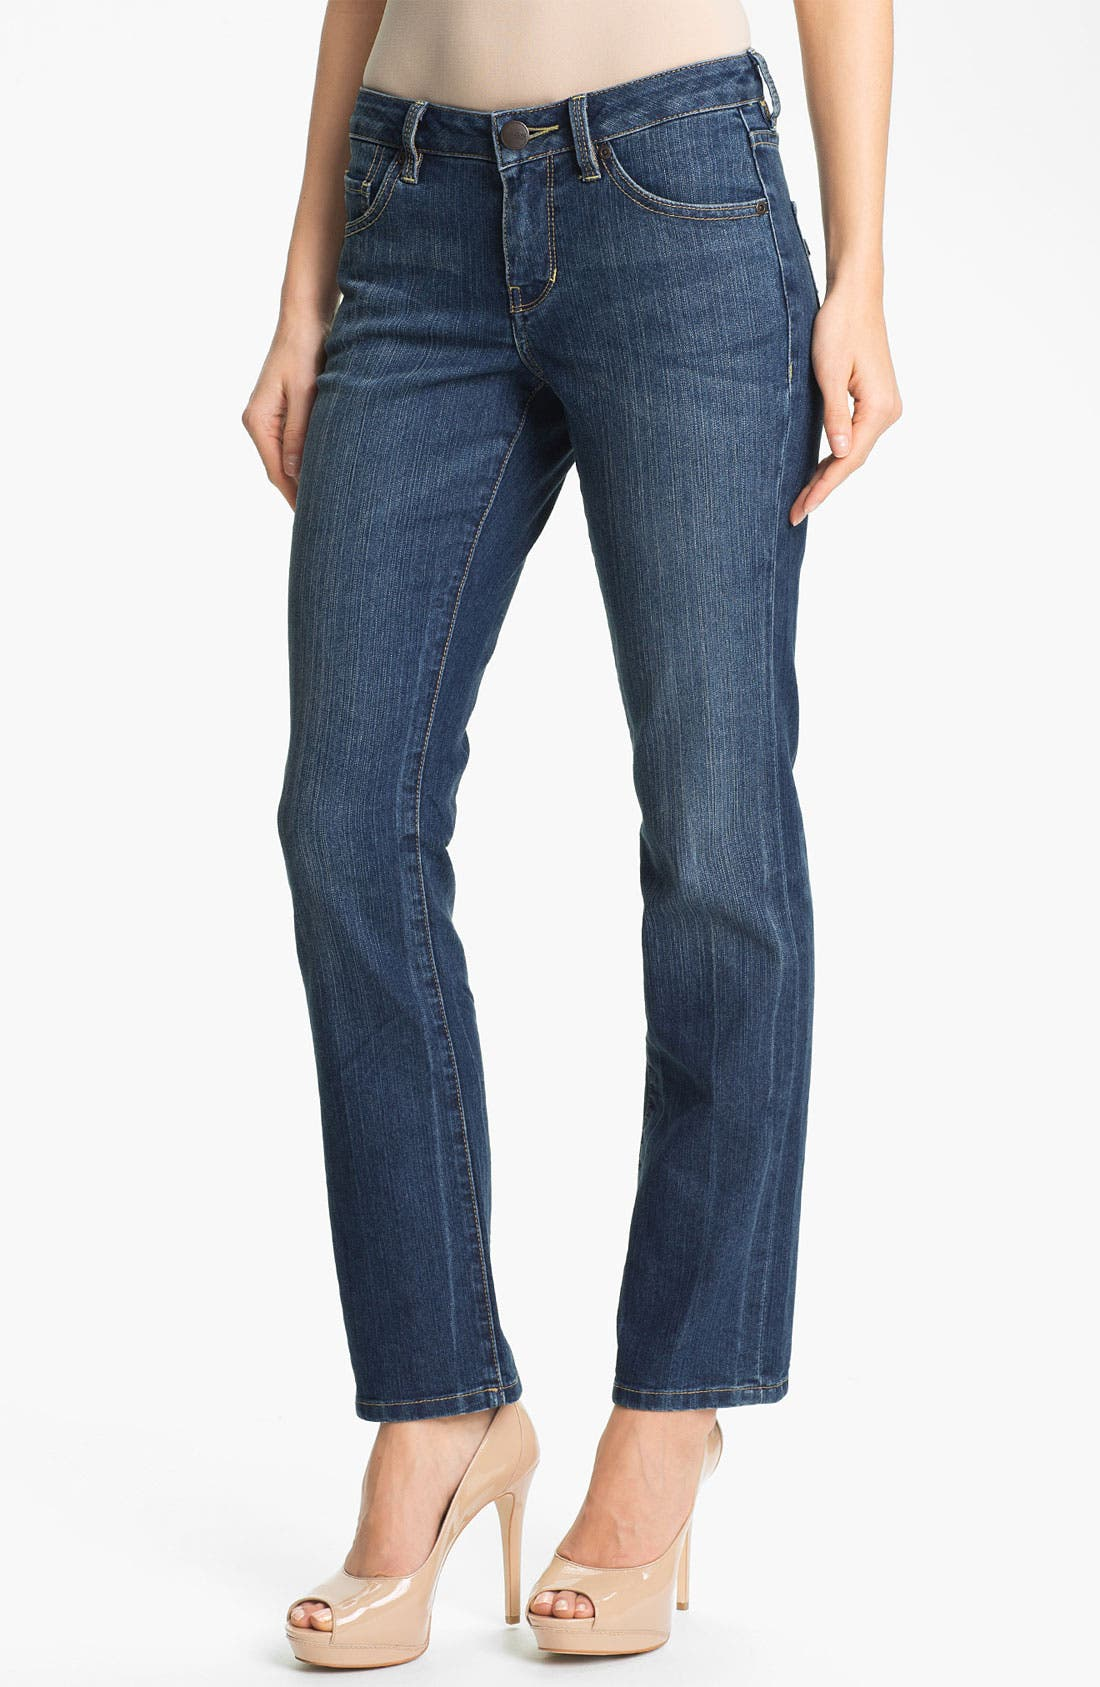 Main Image - Jag Jeans 'Lucy' Bootcut Stretch Jeans (Blue Raven) (Petite)